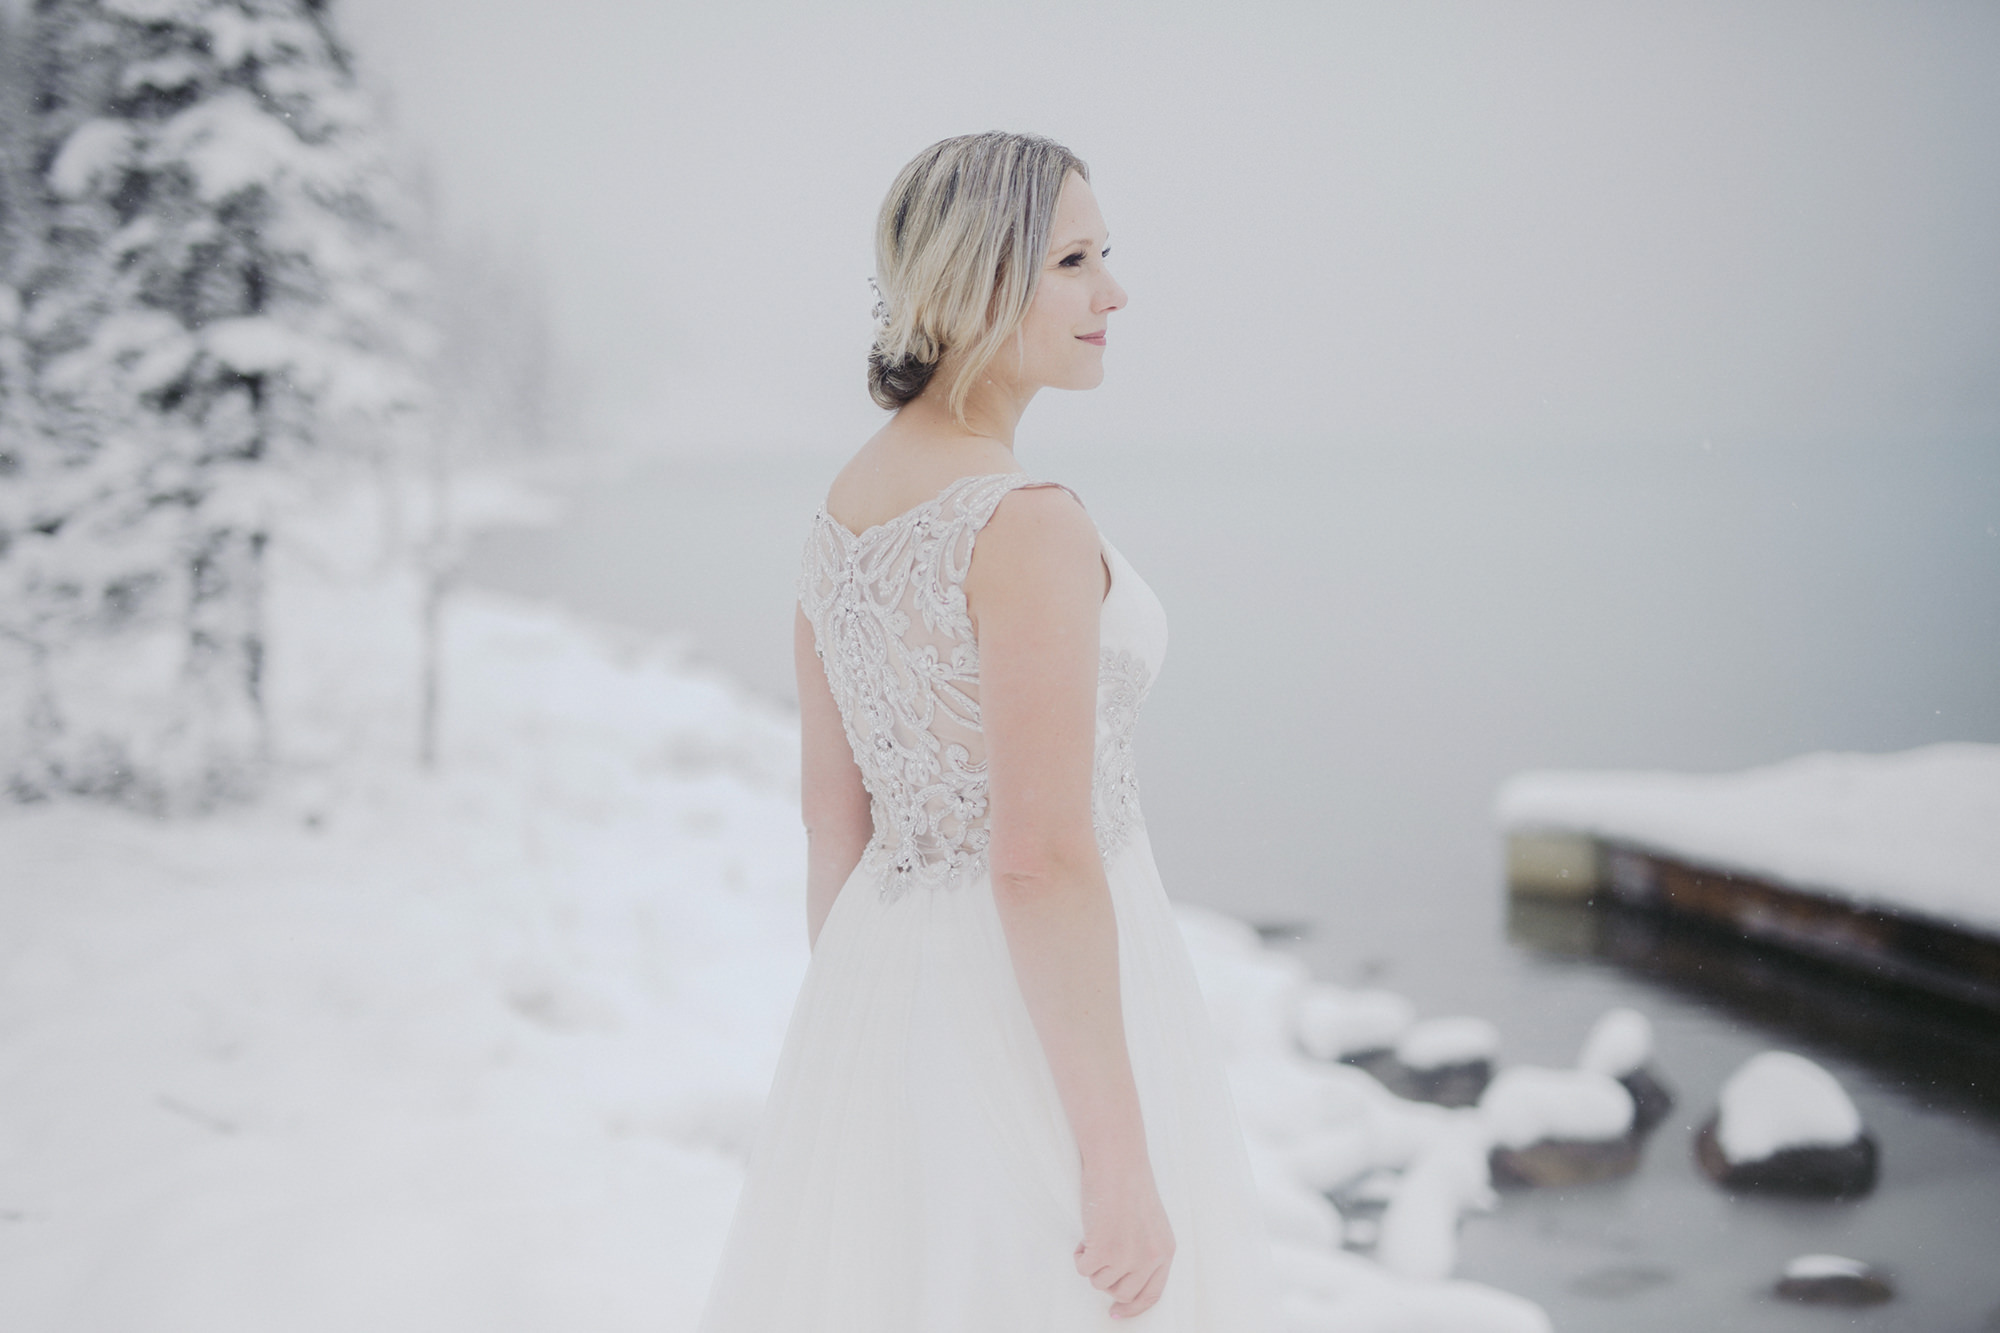 Lake Louise Winter Wedding -06.JPG